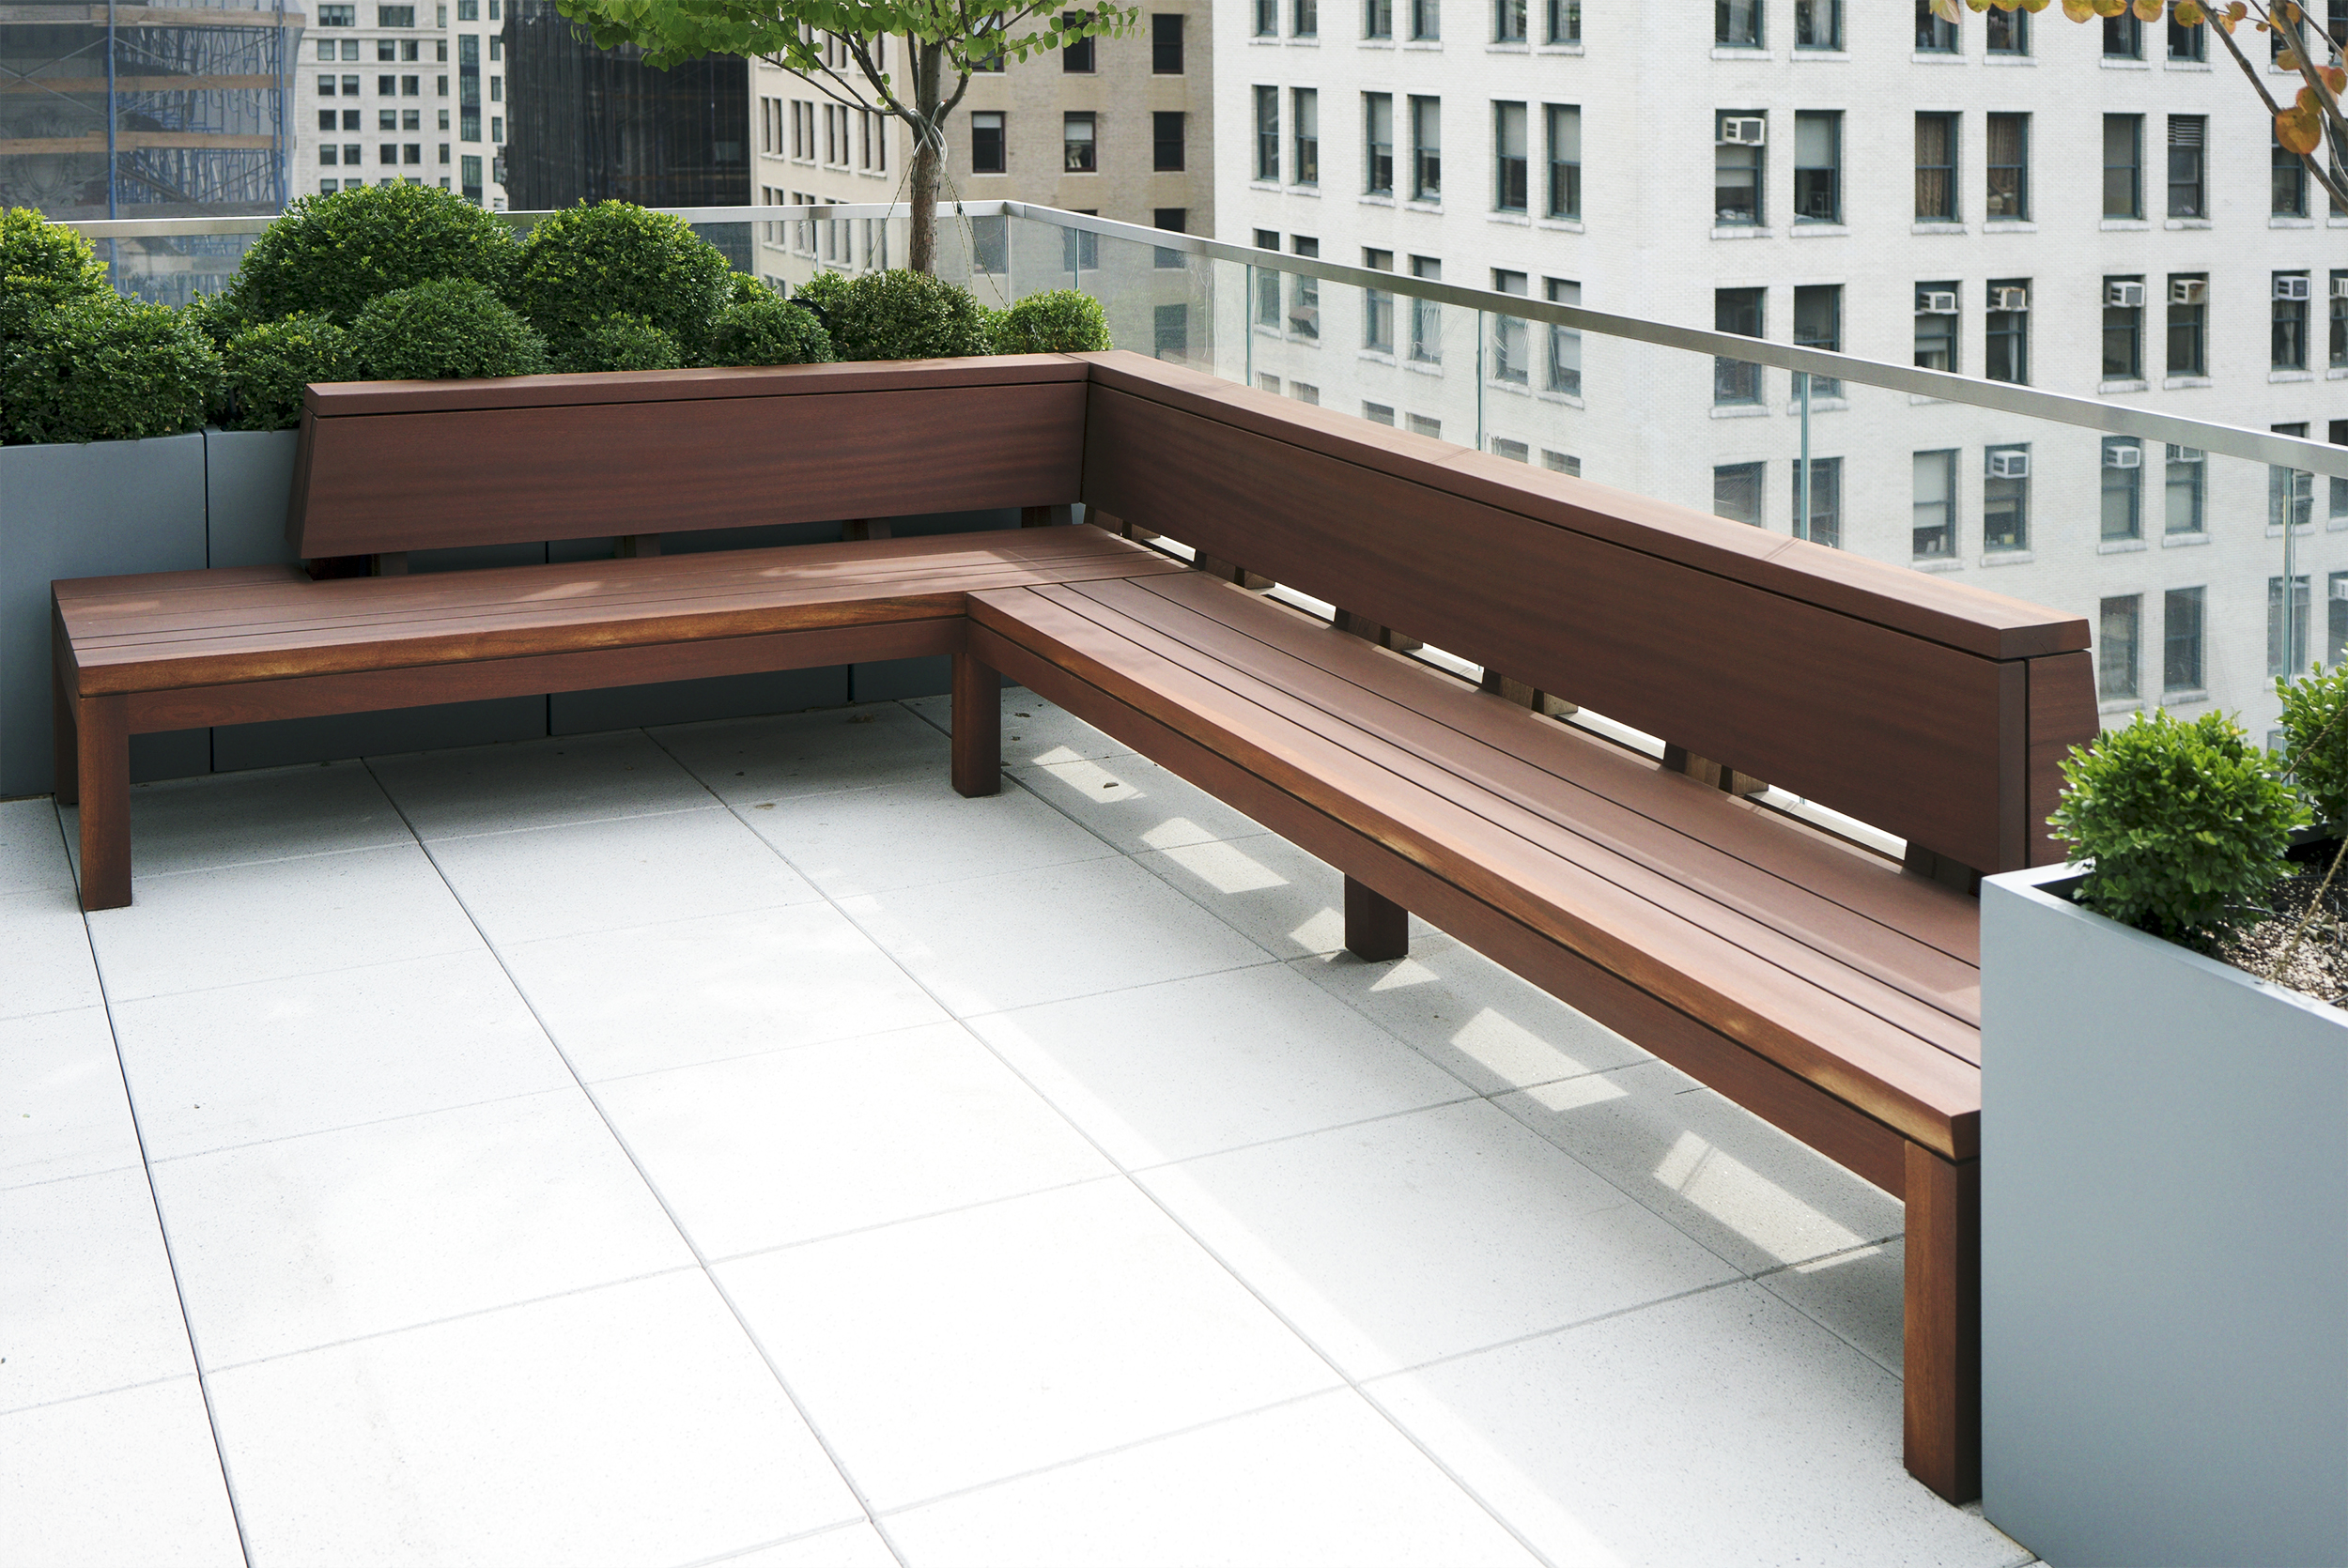 CUSTOM OUTDOOR SECTIONAL CREATED FROM A FOUR-SLAB FILTCH OF DEADSTOCK SAPELE